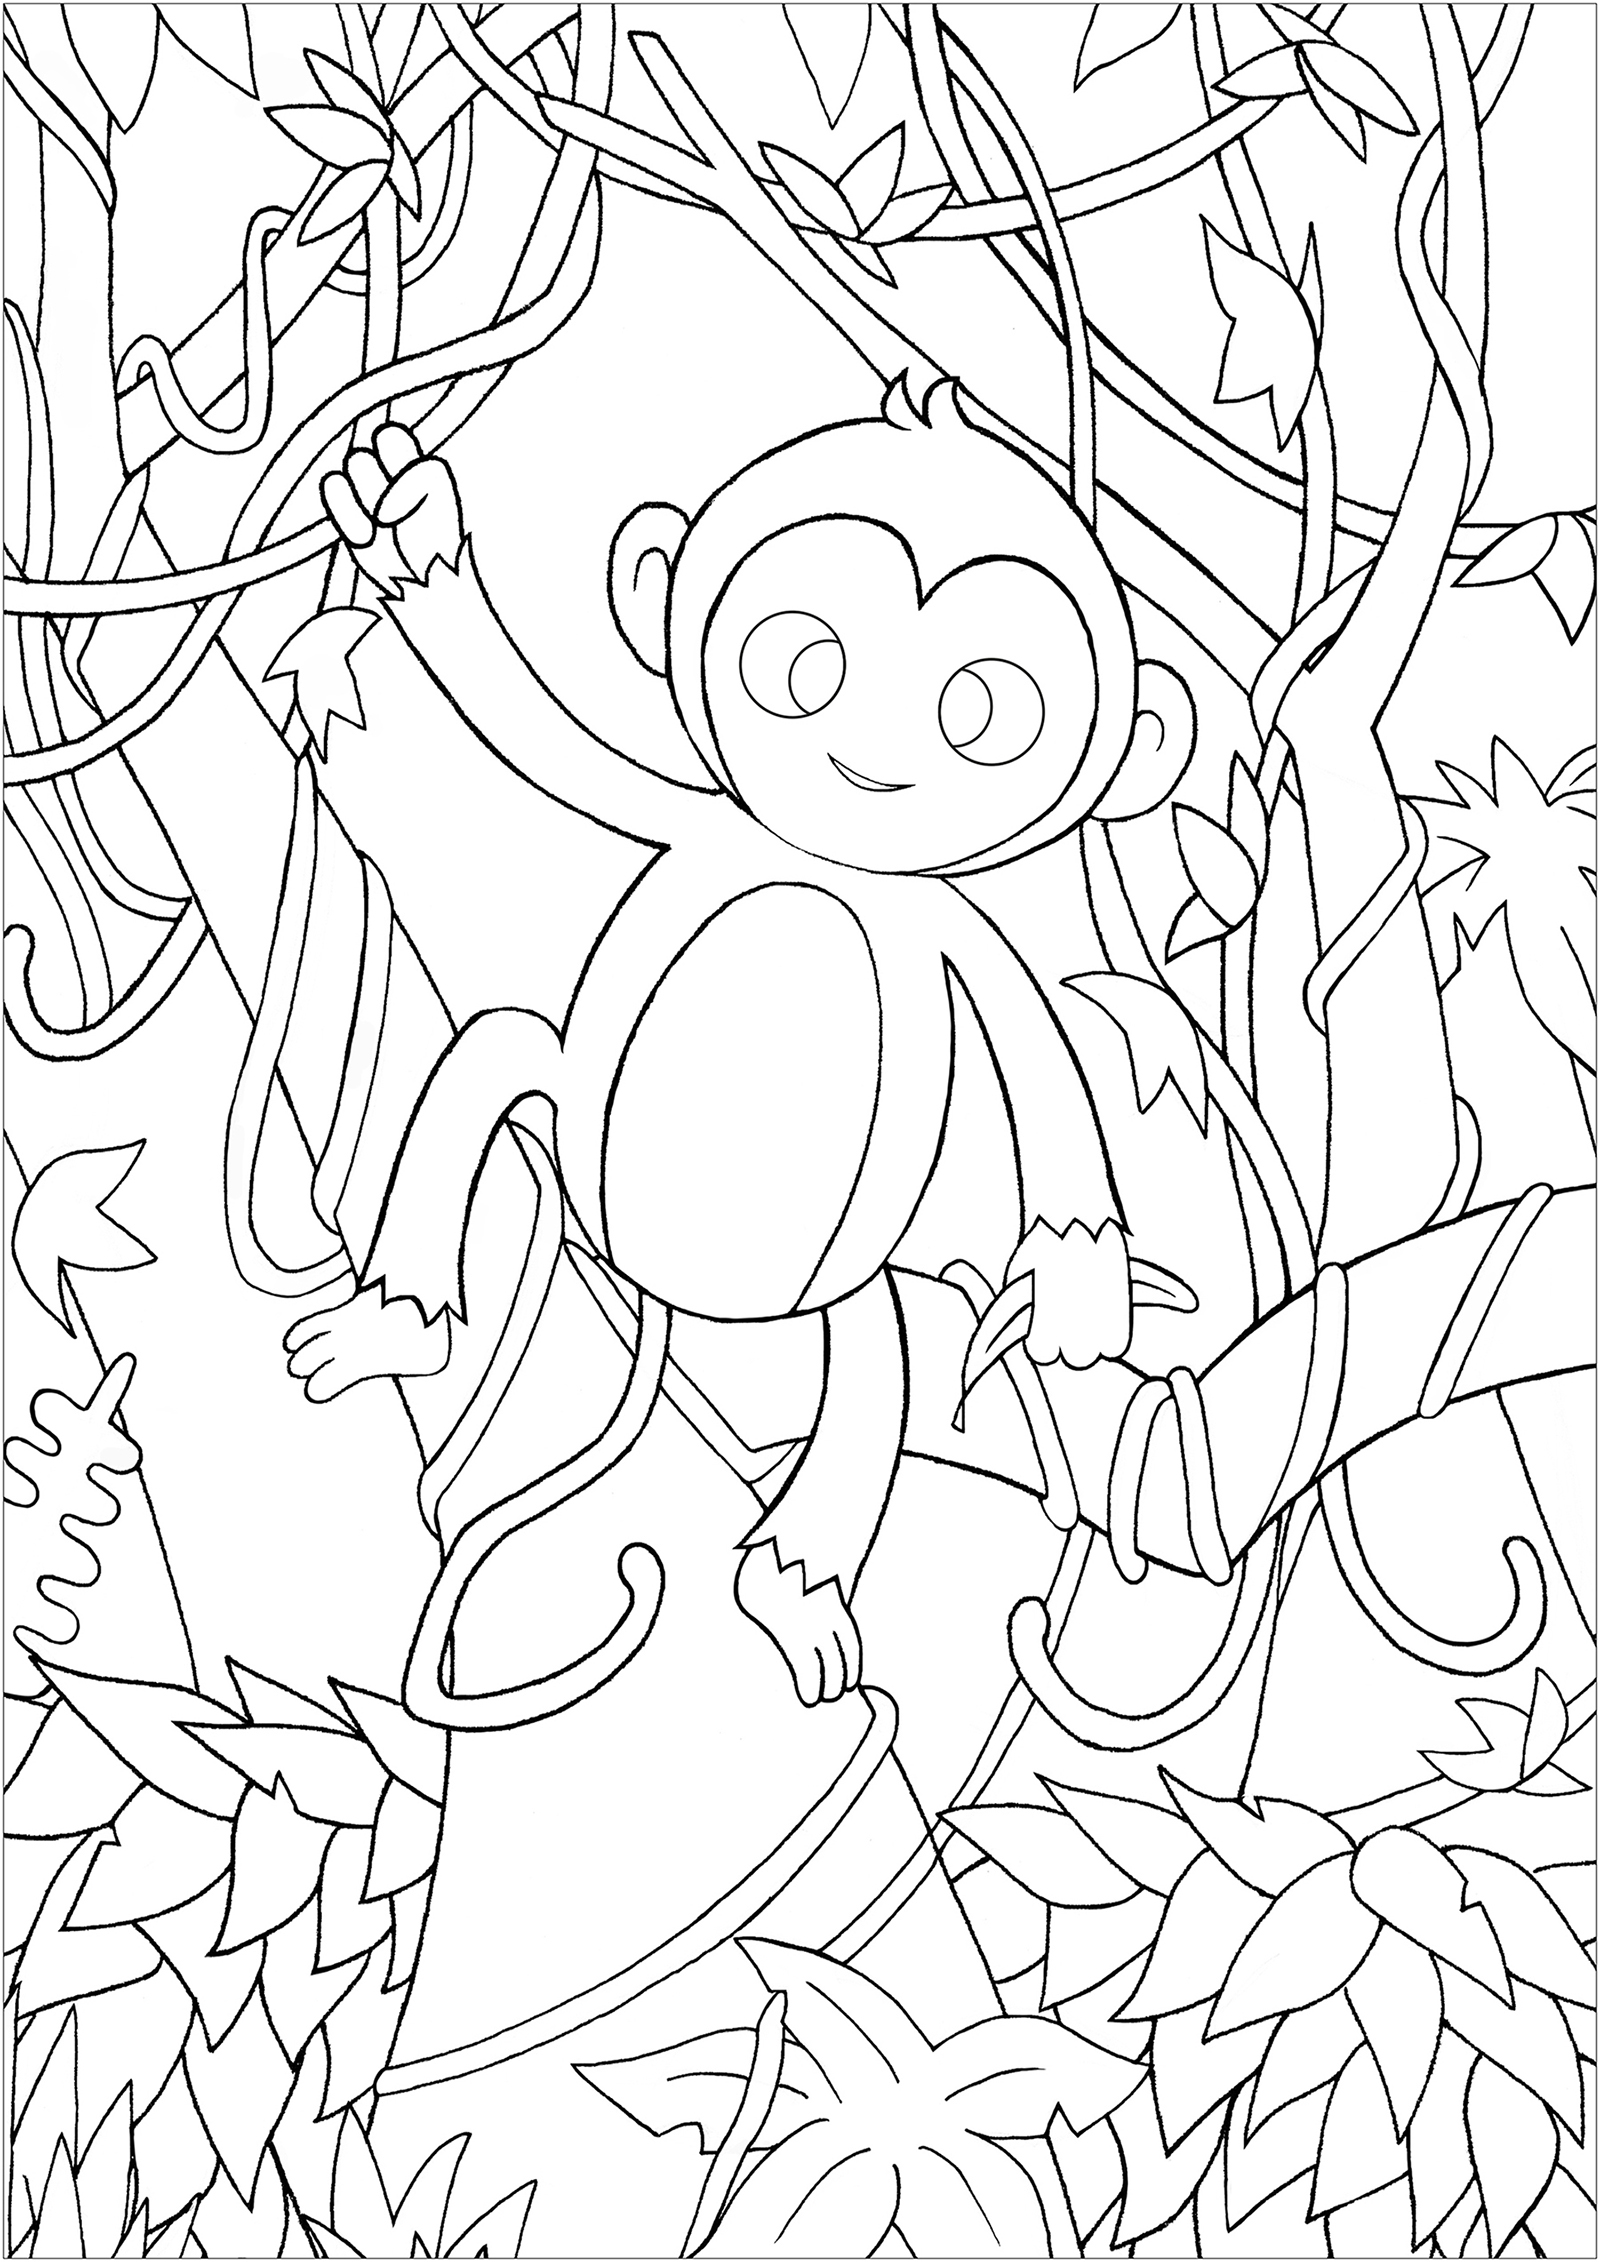 Funny Monkeys coloring page for children